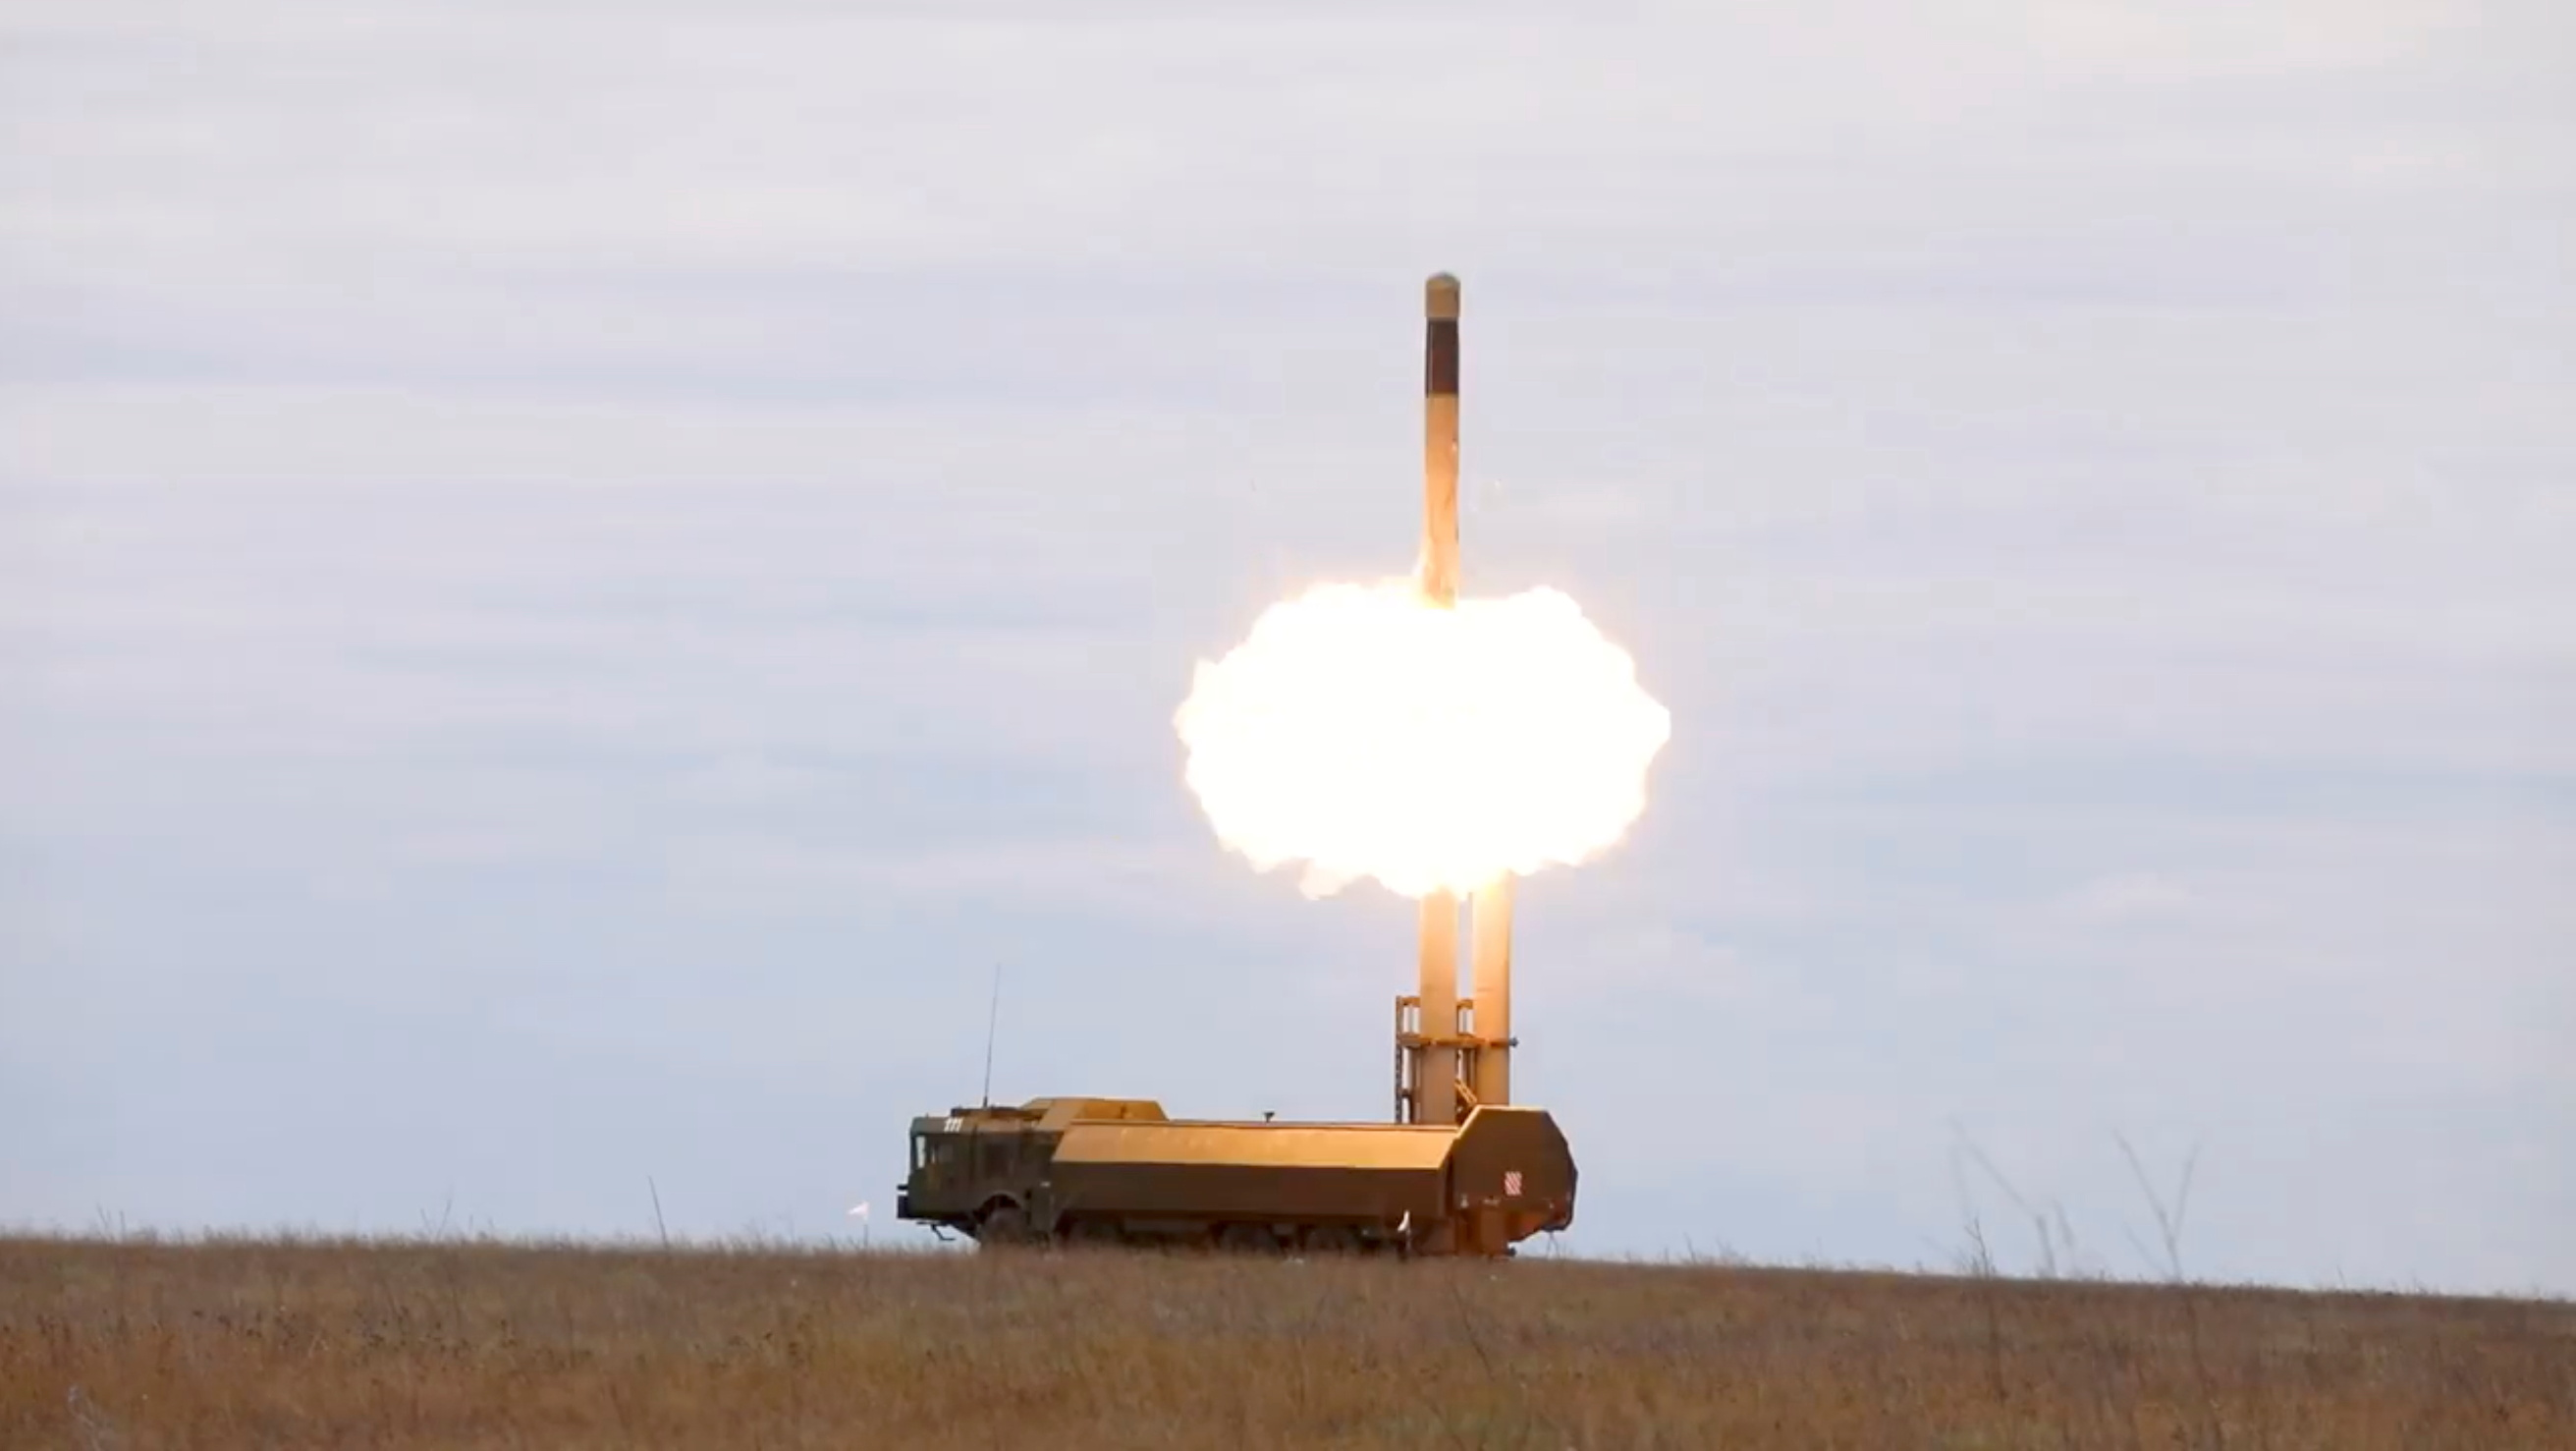 The Bastion coastal missile system of the Black Sea Fleet launches a missile against sea targets during the exercise at the Opuk training ground in Crimea, in this still image taken from video released September 23, 2021. Russian Defence Ministry Press Service/Handout via REUTERS